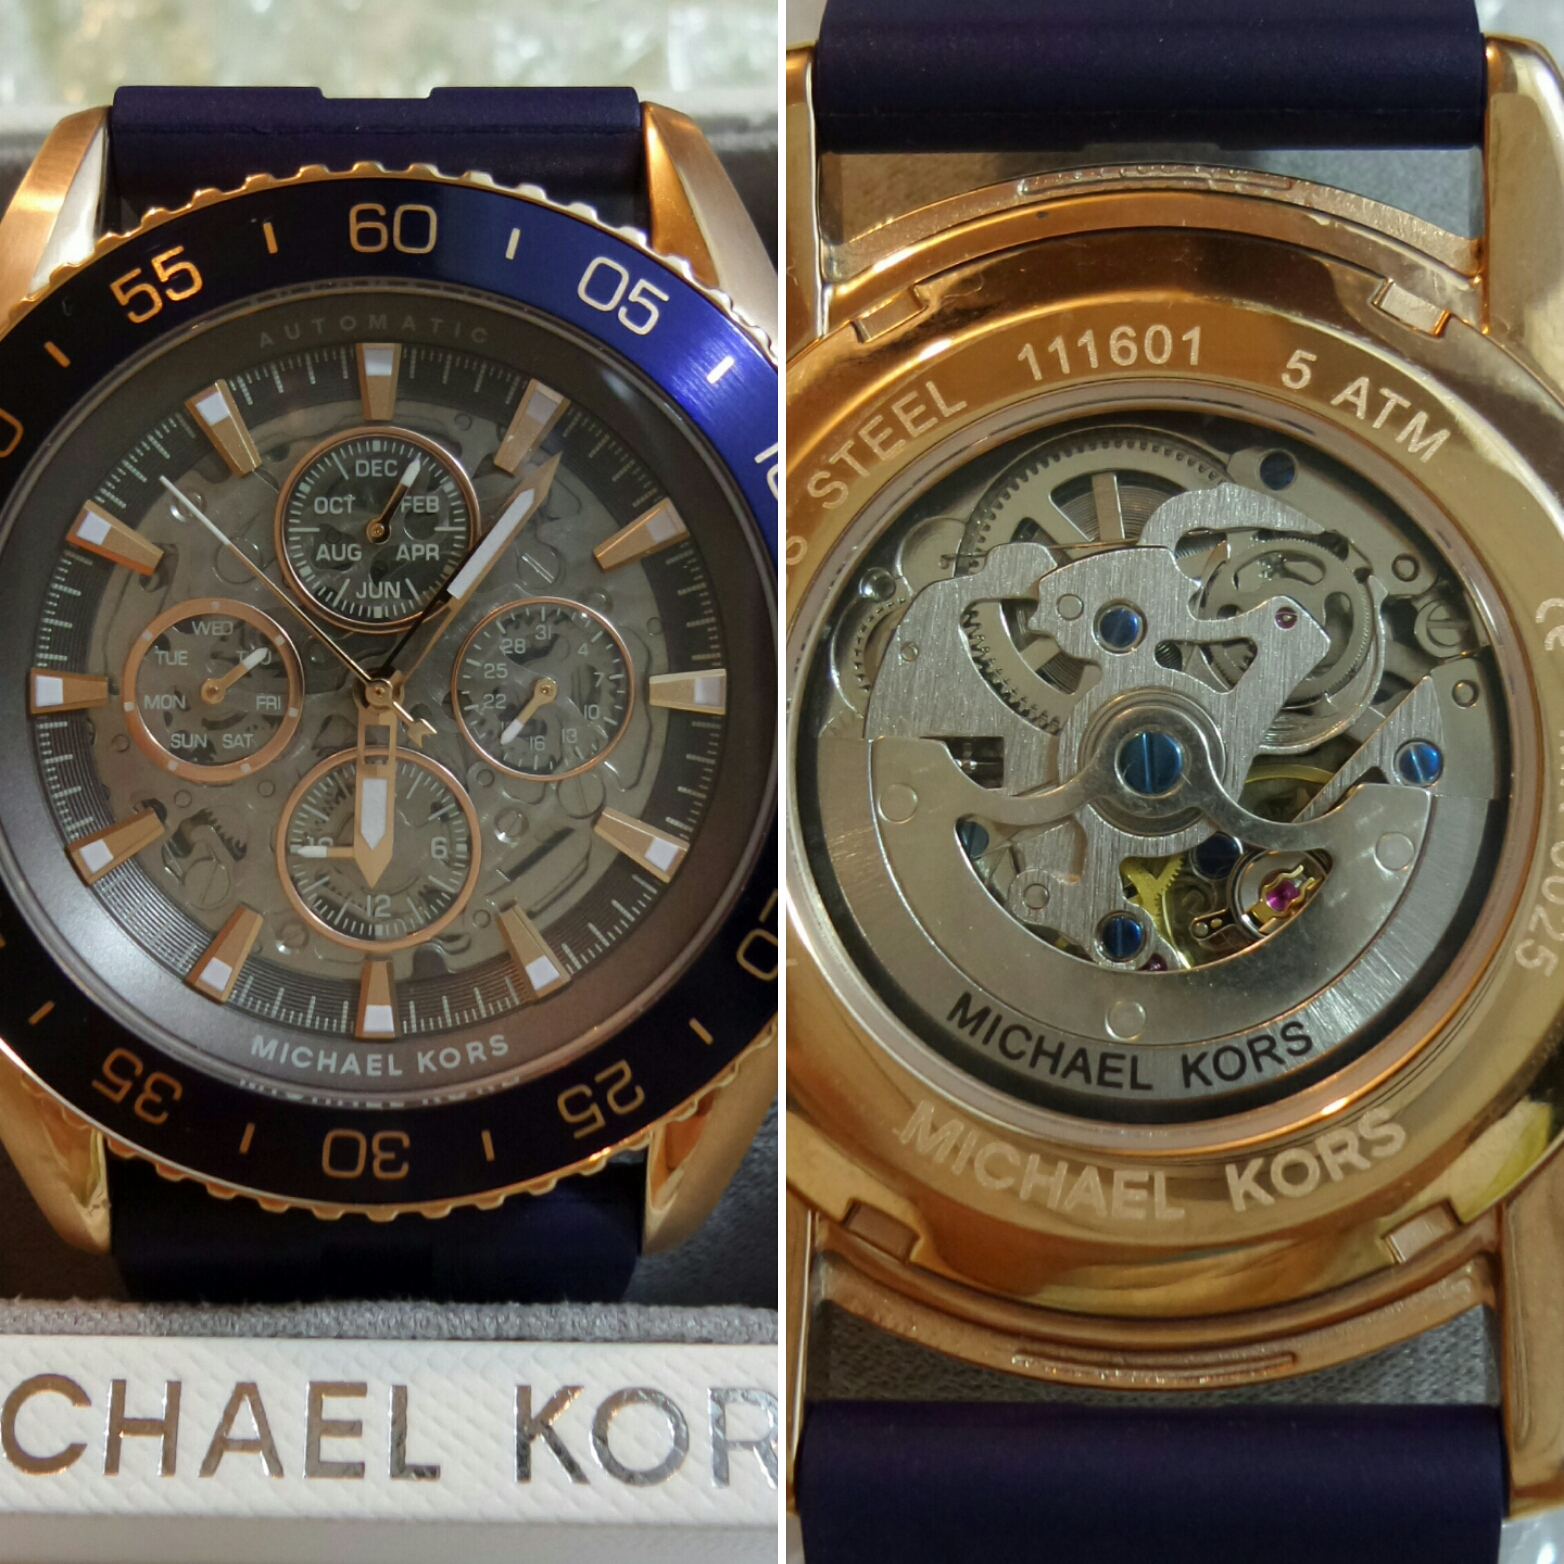 8563795d0a03 This watch is the perfect all rounder it can be worn casual or for a more  formal occasions. The rose gold case and blue strap complement each other  ...